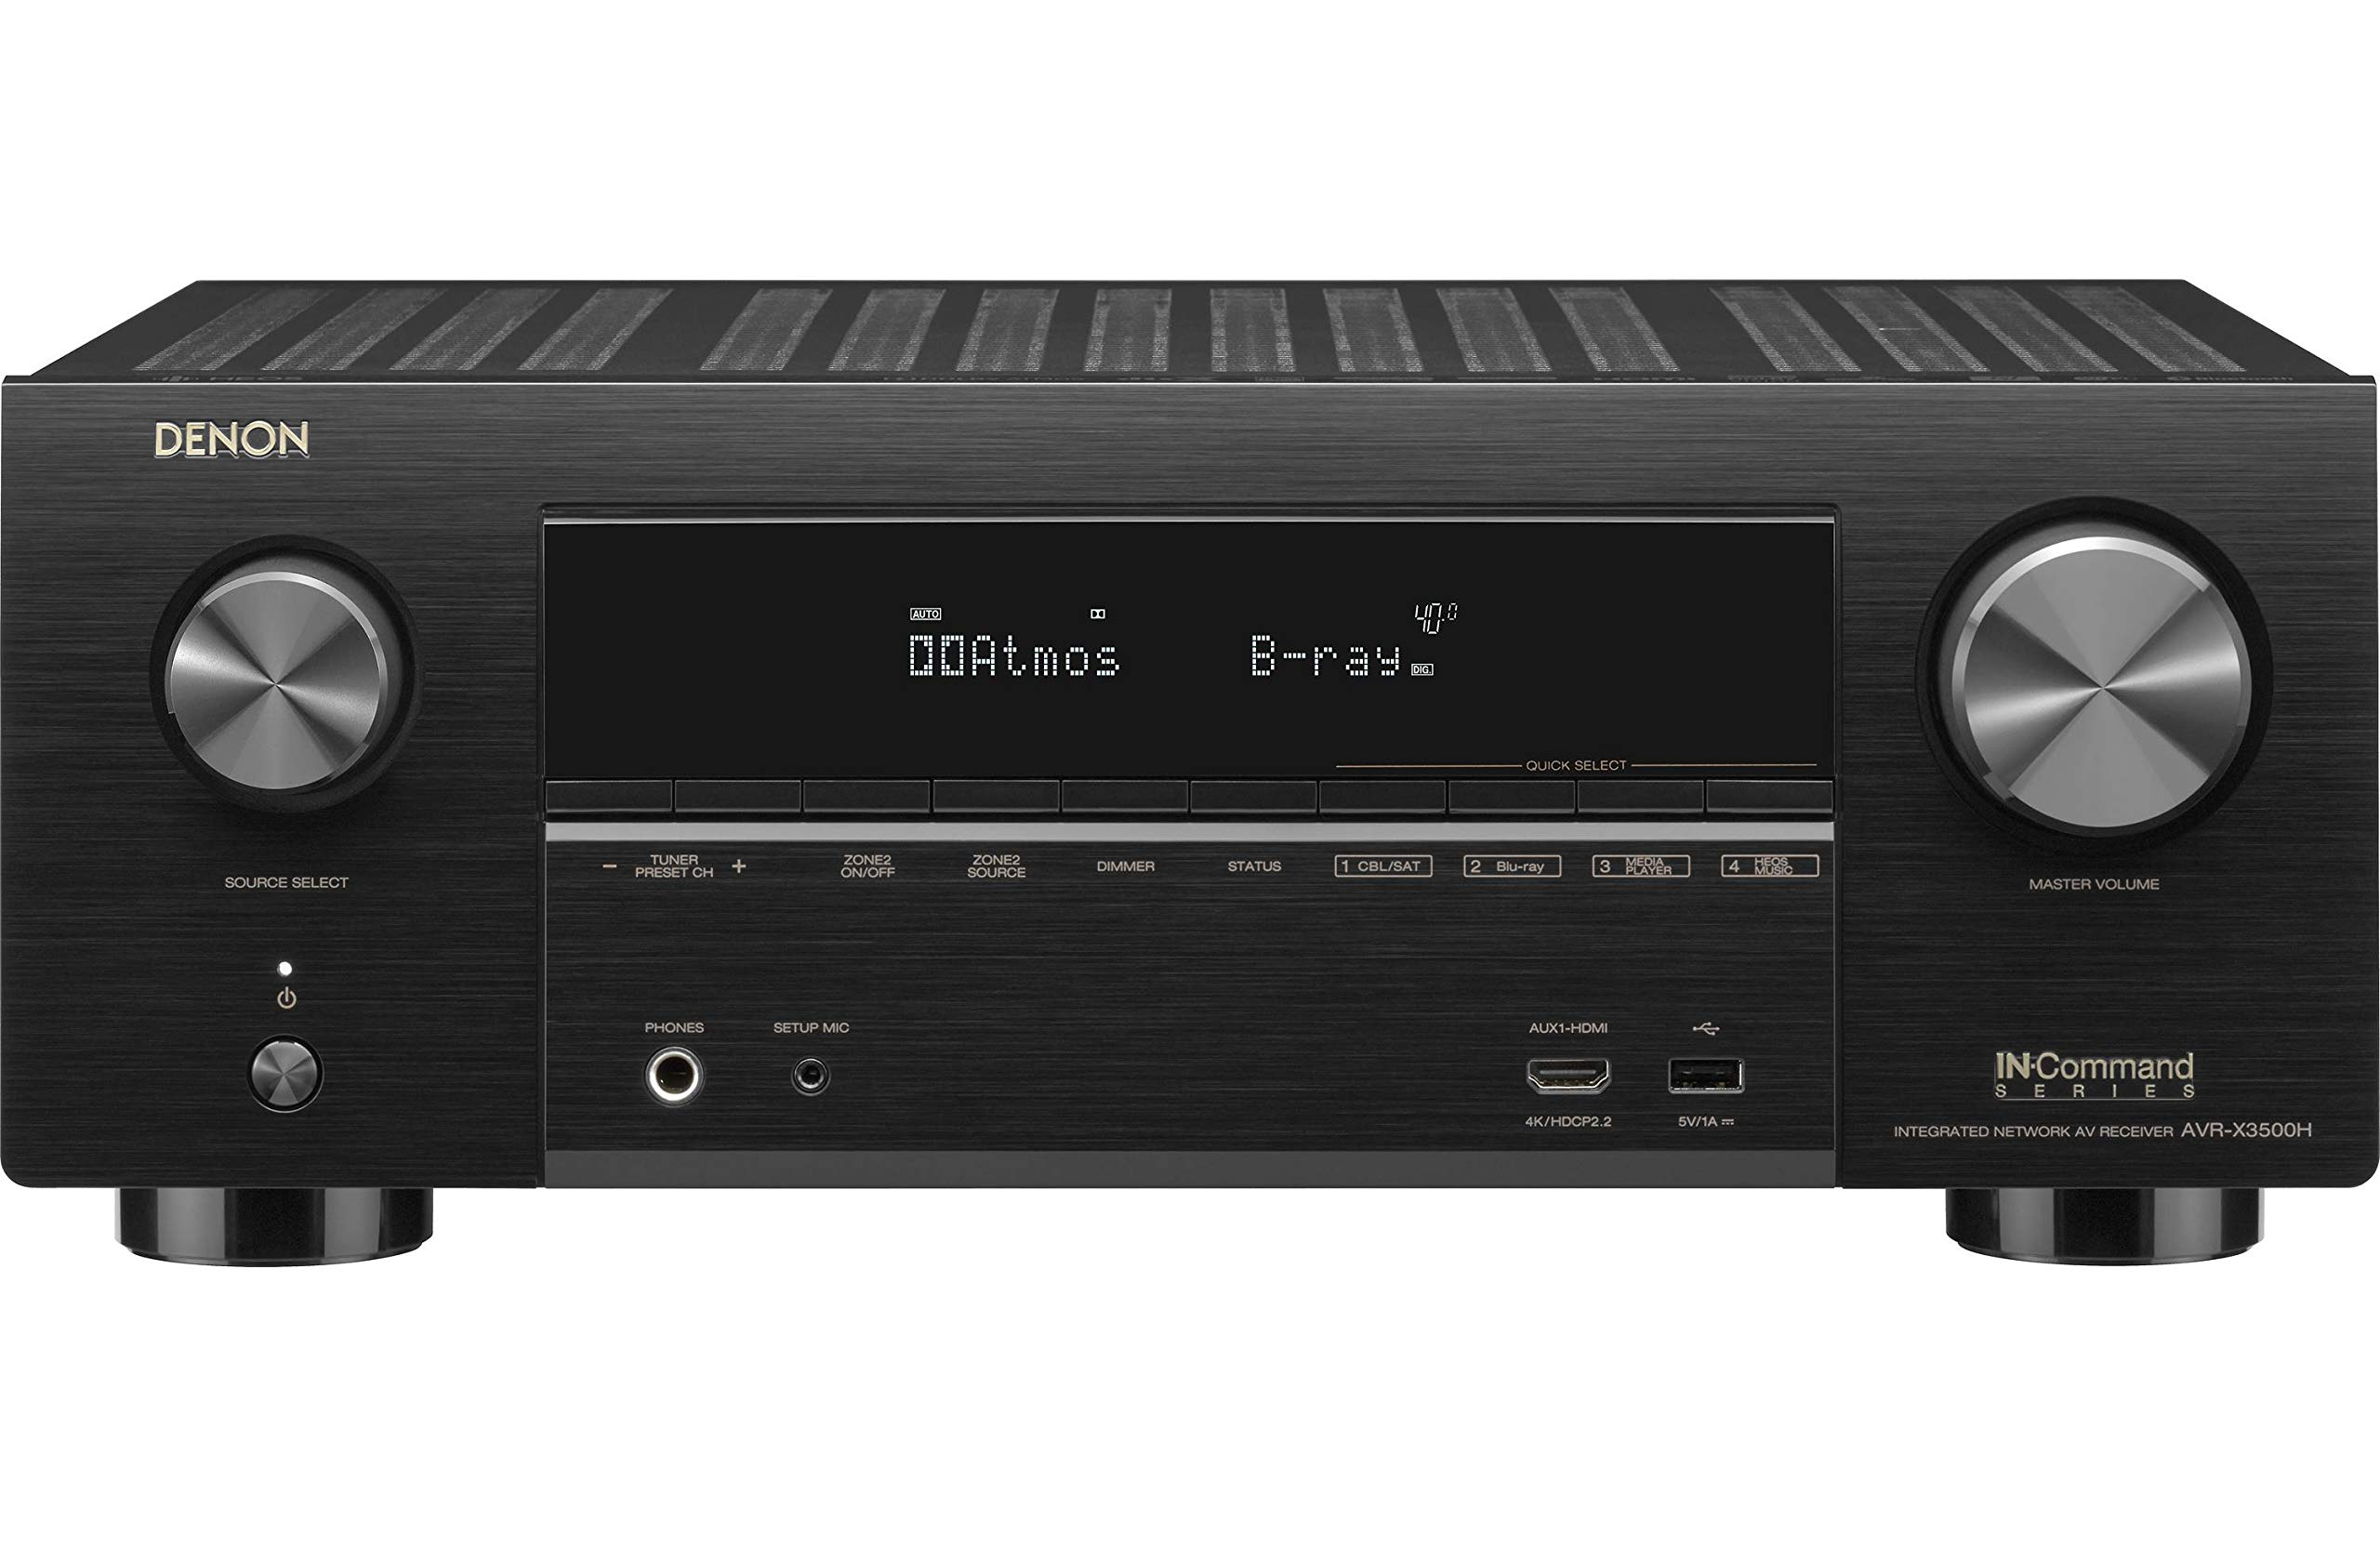 Denon AVR-X3500H Receiver (2018 Model) - 8 HDMI Input/3 Output & Enhanced Audio Return Channel (eARC), HDR10, 3D Video Support | Super High Power, 7.2 Channel 4K Ultra HD Video | Dolby Surround Sound by Denon (Image #1)